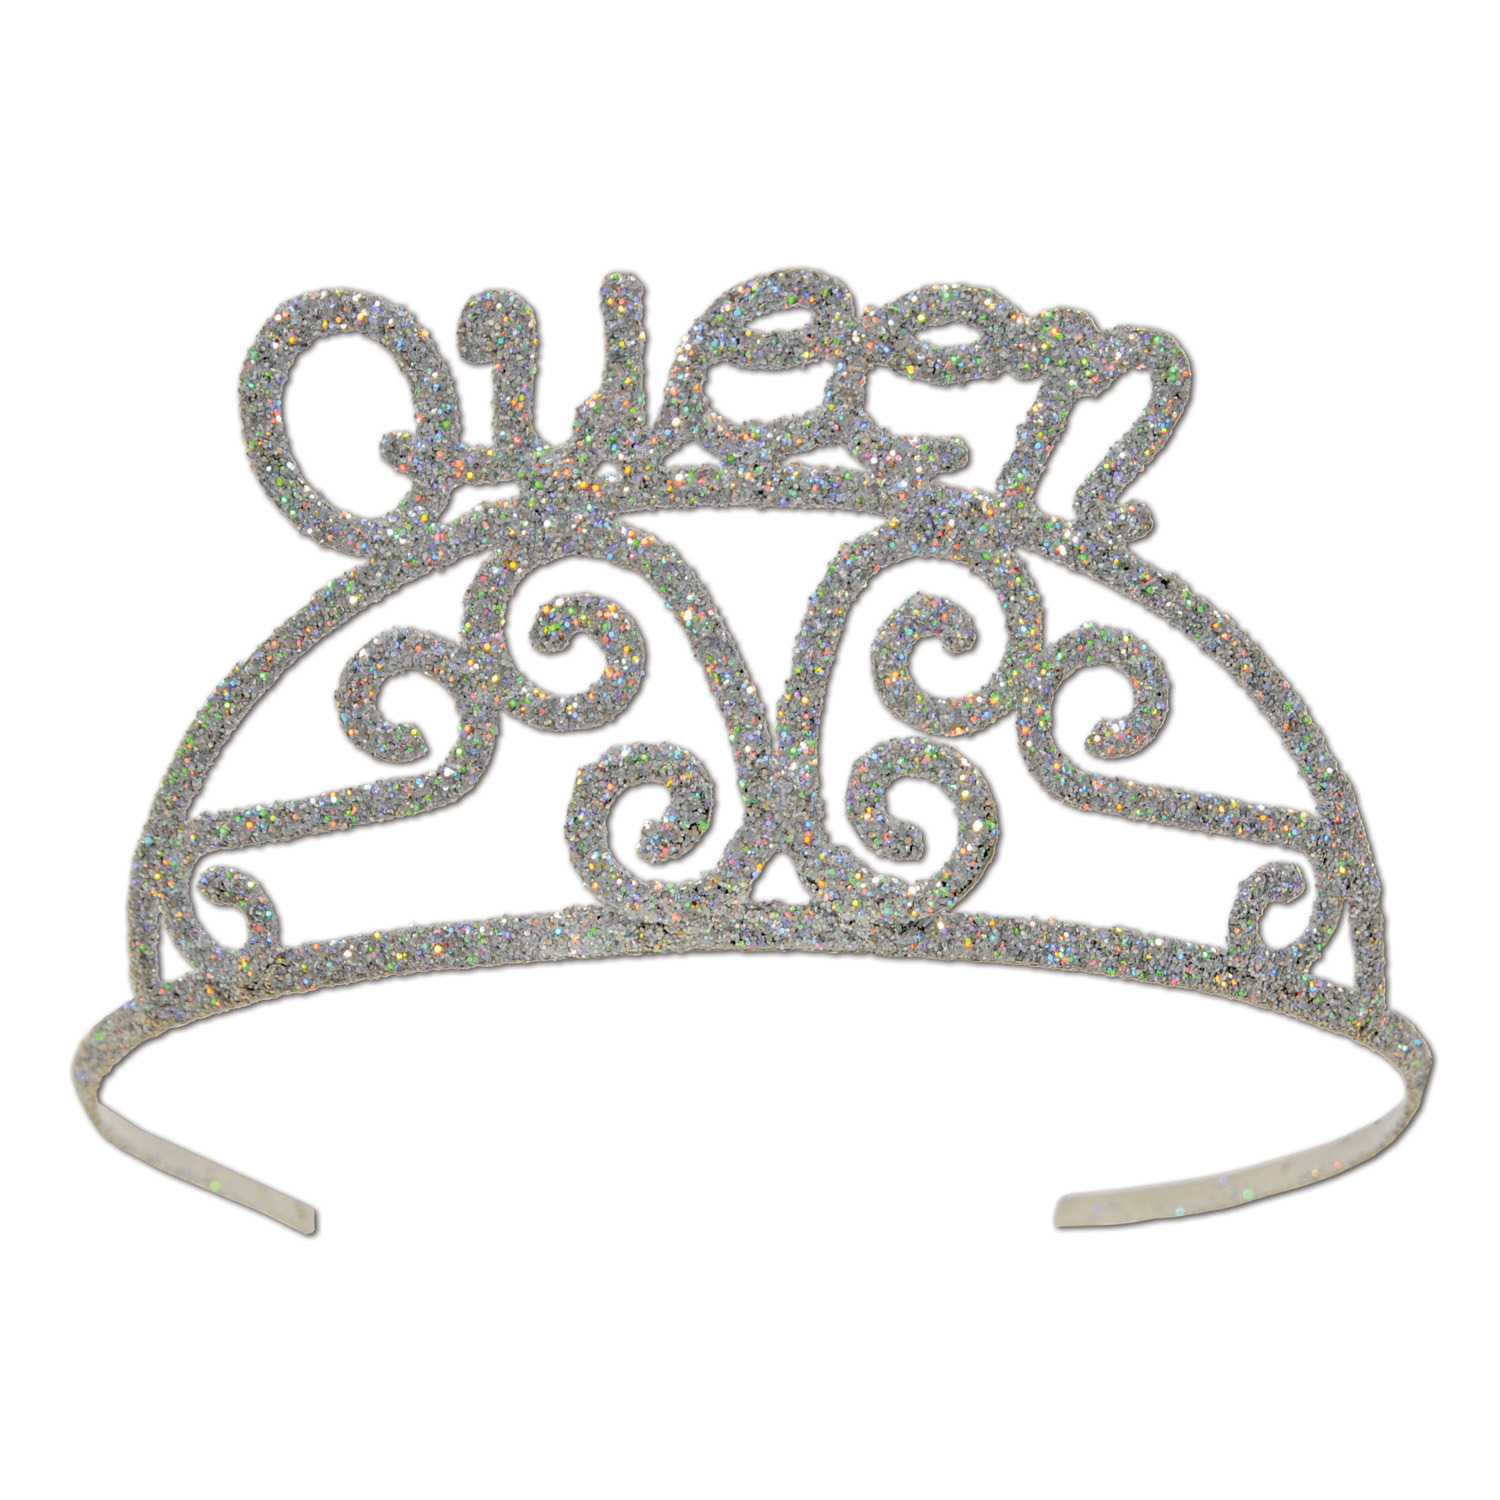 Silver plastic tiara covered in glitter with an authentic design and the word queen.